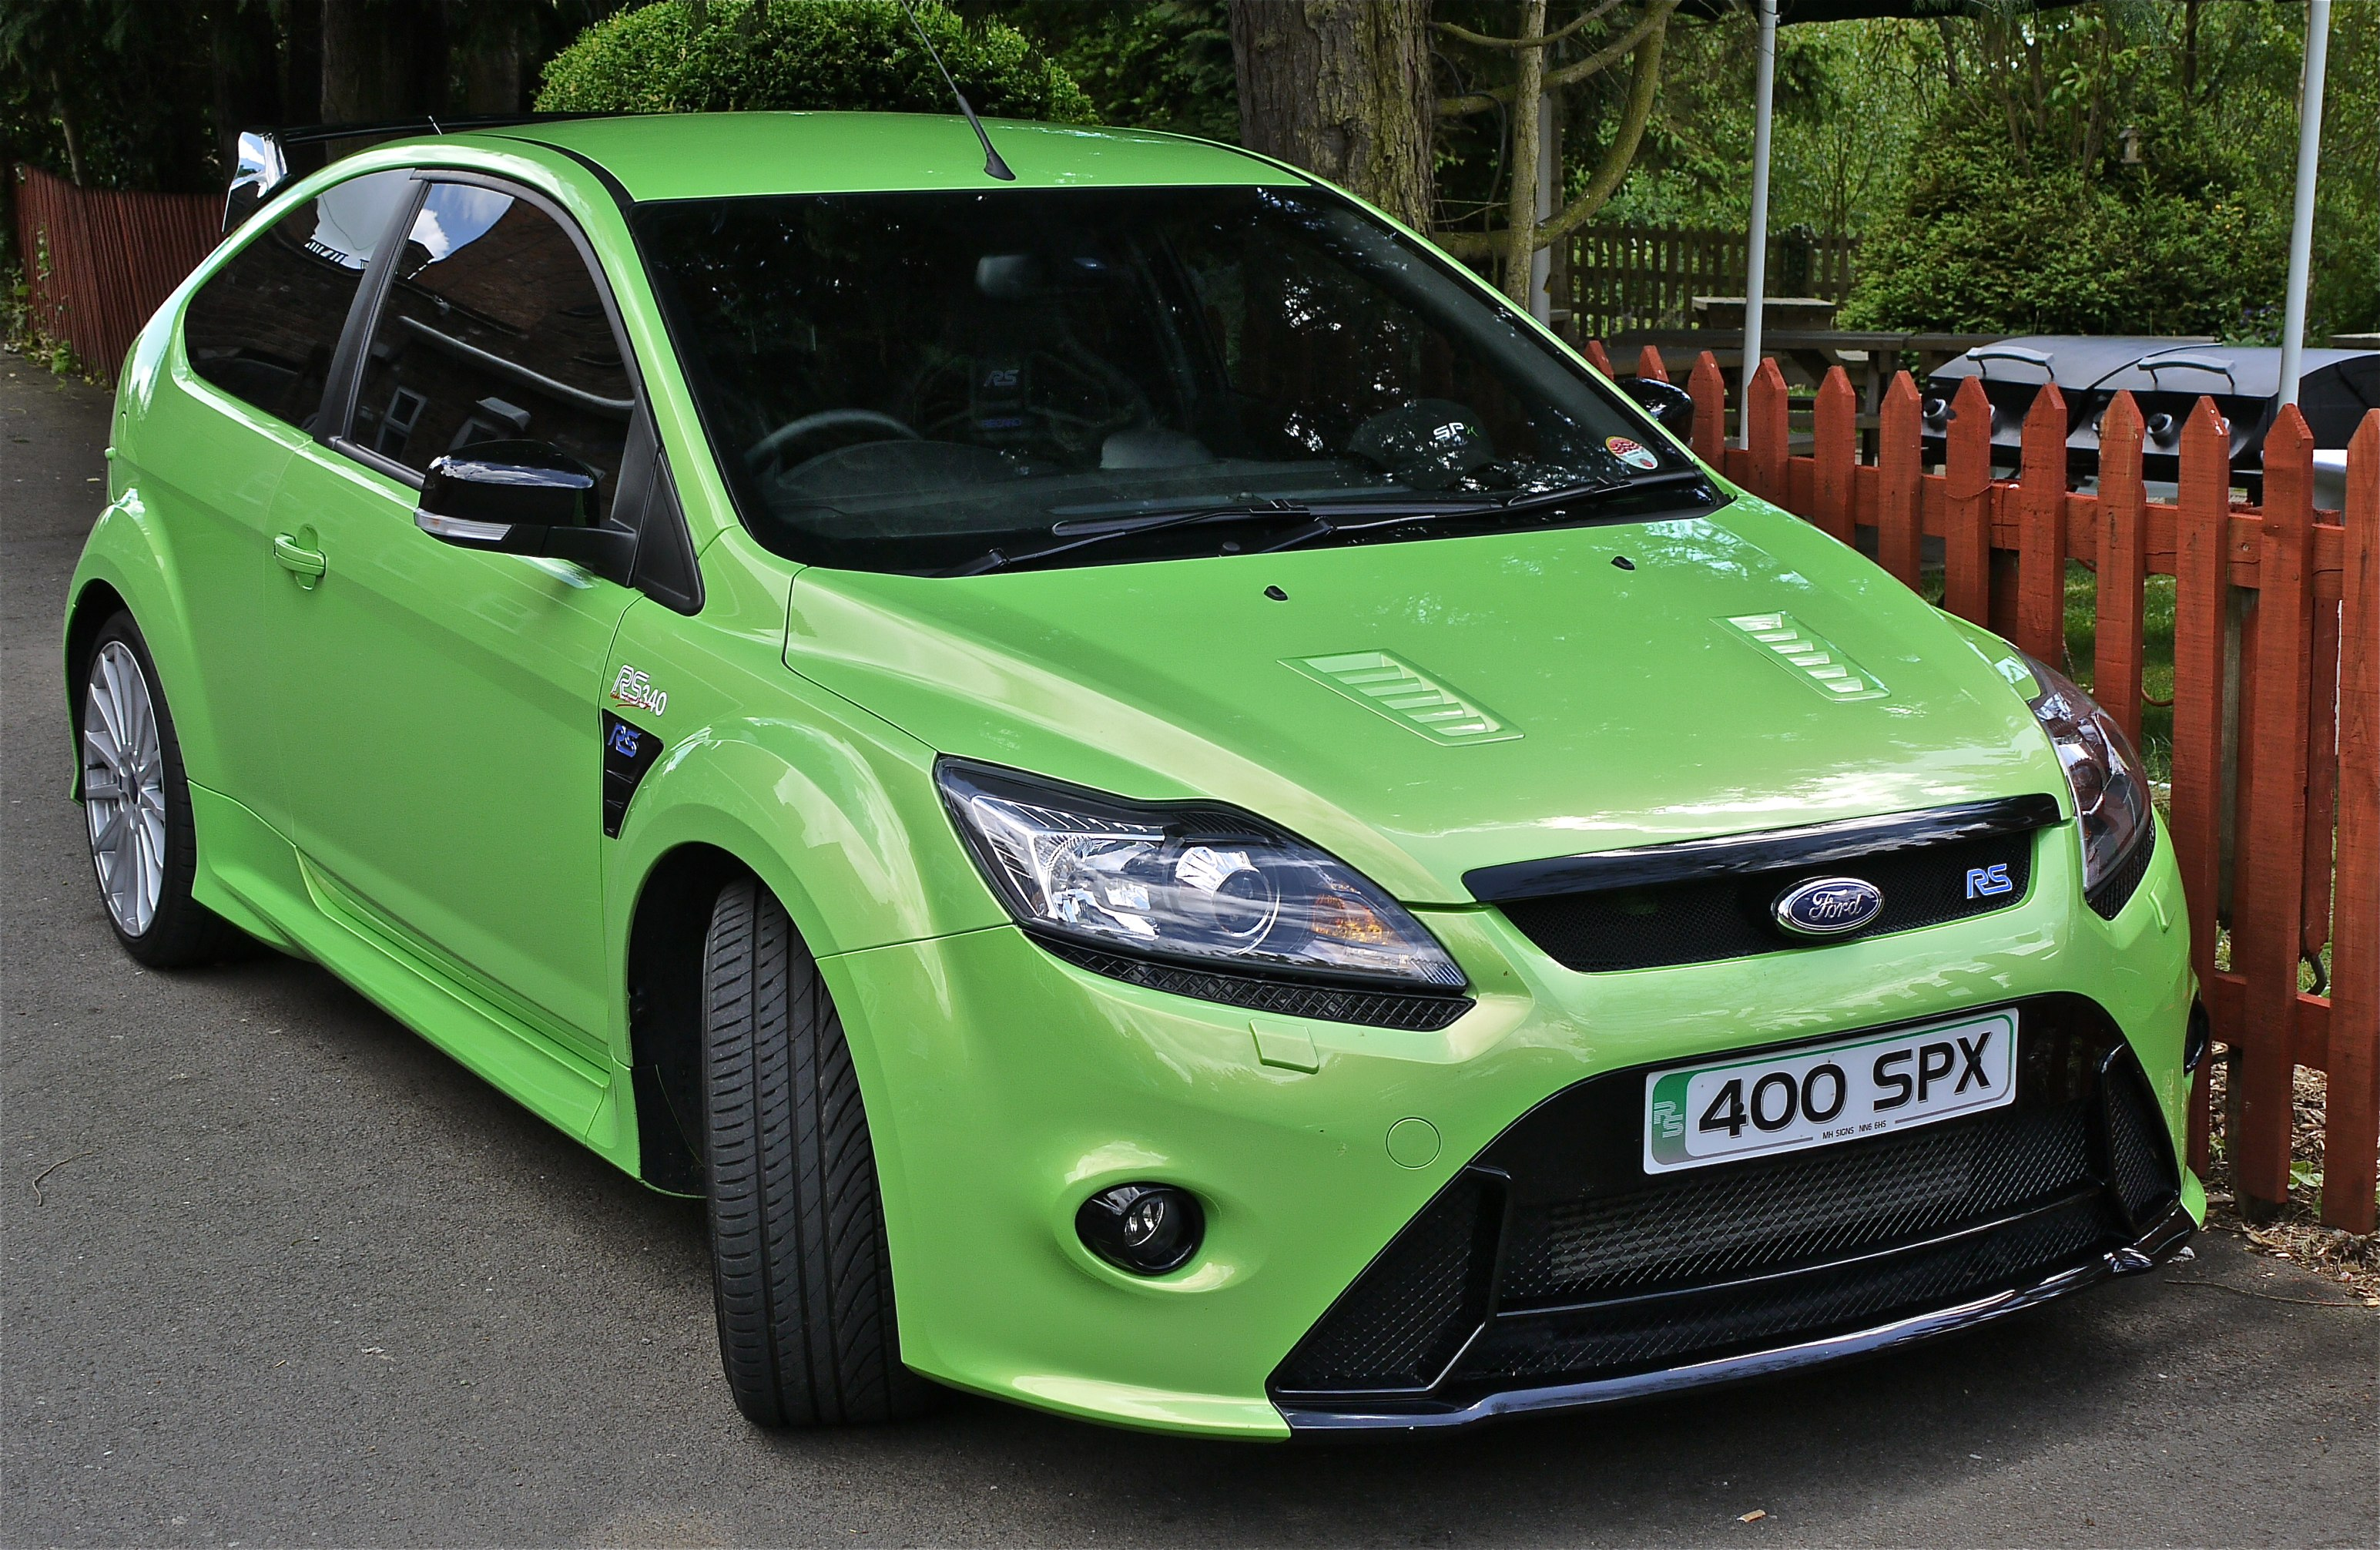 file ford focus rs flickr mick wikimedia commons. Black Bedroom Furniture Sets. Home Design Ideas